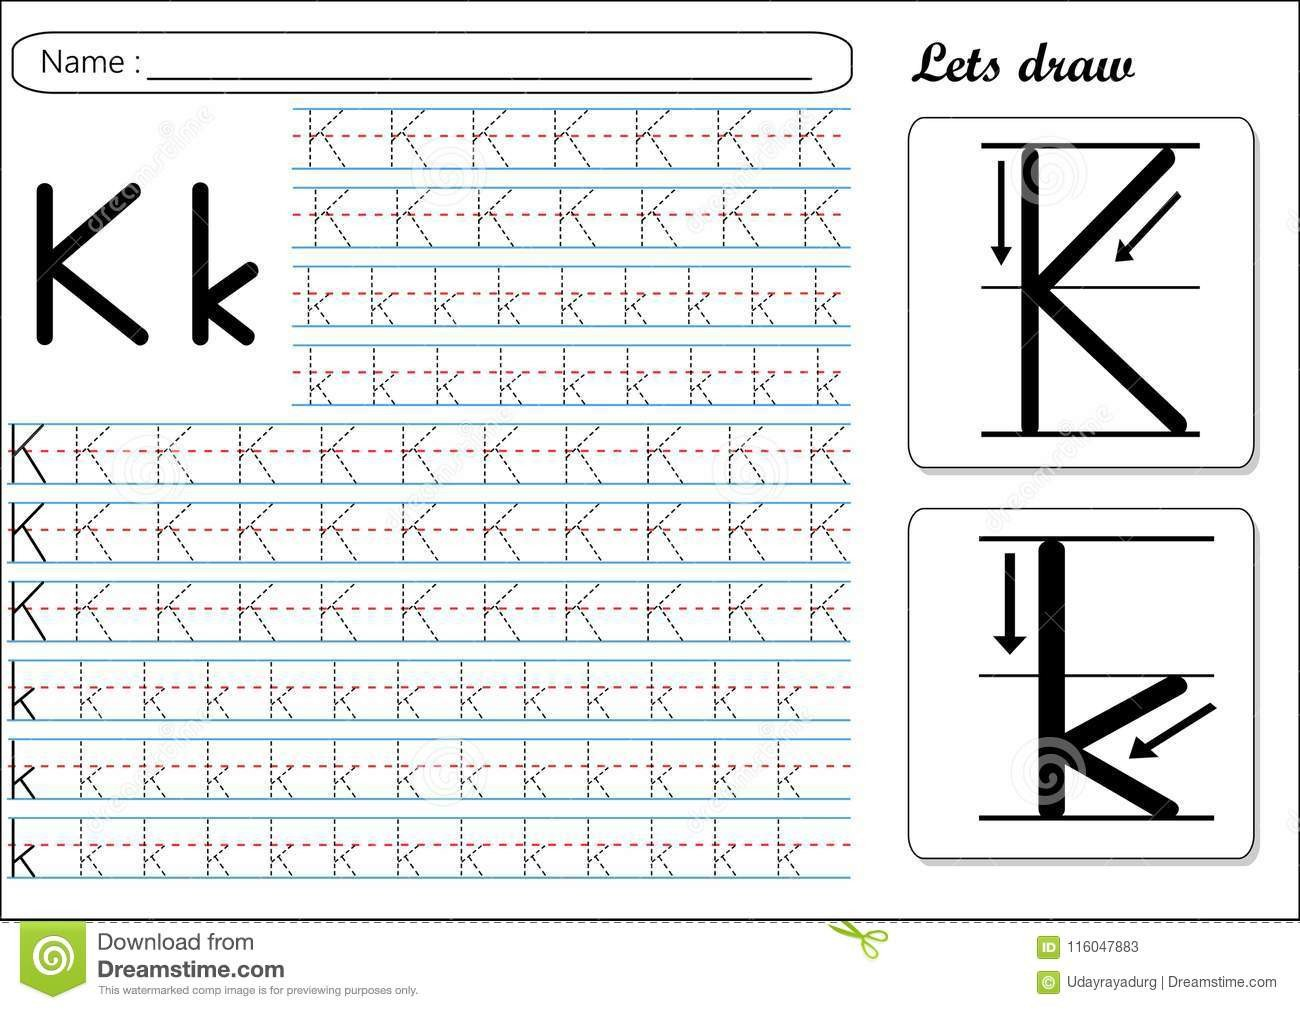 Letter K Tracing Worksheets Preschool Tracing Worksheet Kk Stock Vector Illustration Of Cursive